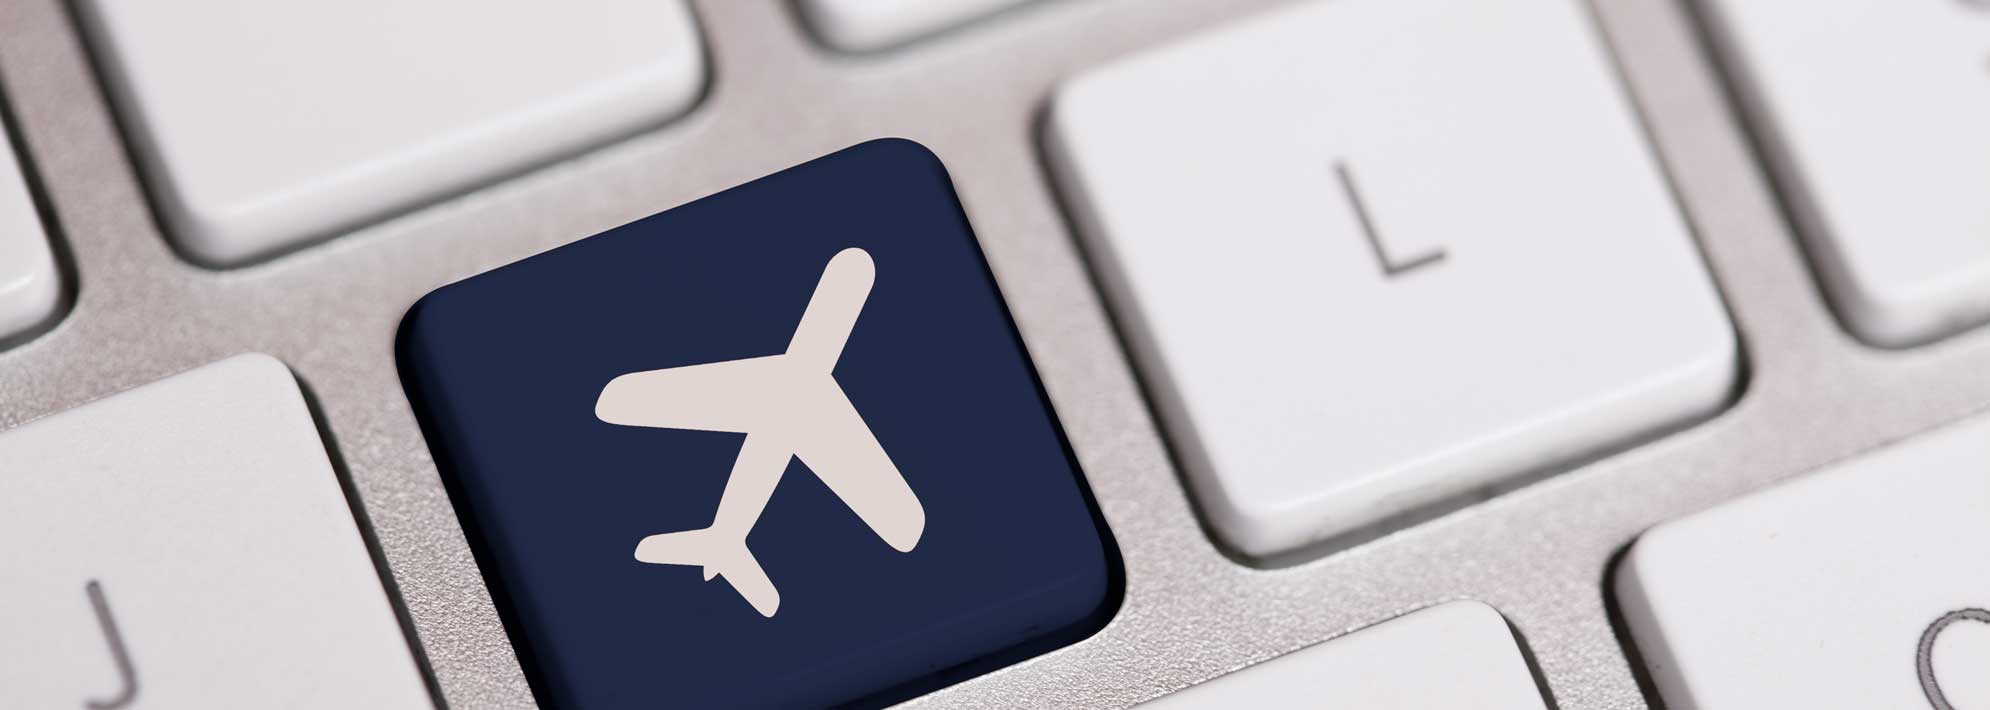 PART 1 - Key technology choices for new airlines